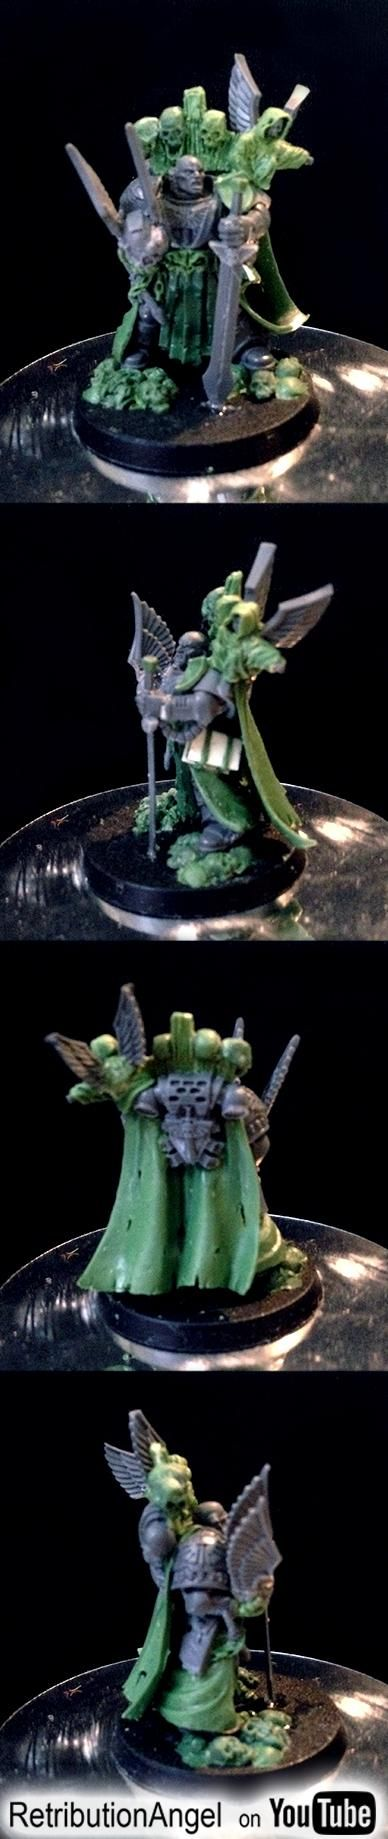 #Retributionangel #40k #40K #conversion #greenstuff #green #stuff #warhammer #dark #angels #darkangel #spacemarine #space #marine #codex #da #charcters #azrael #chapter #master #retri